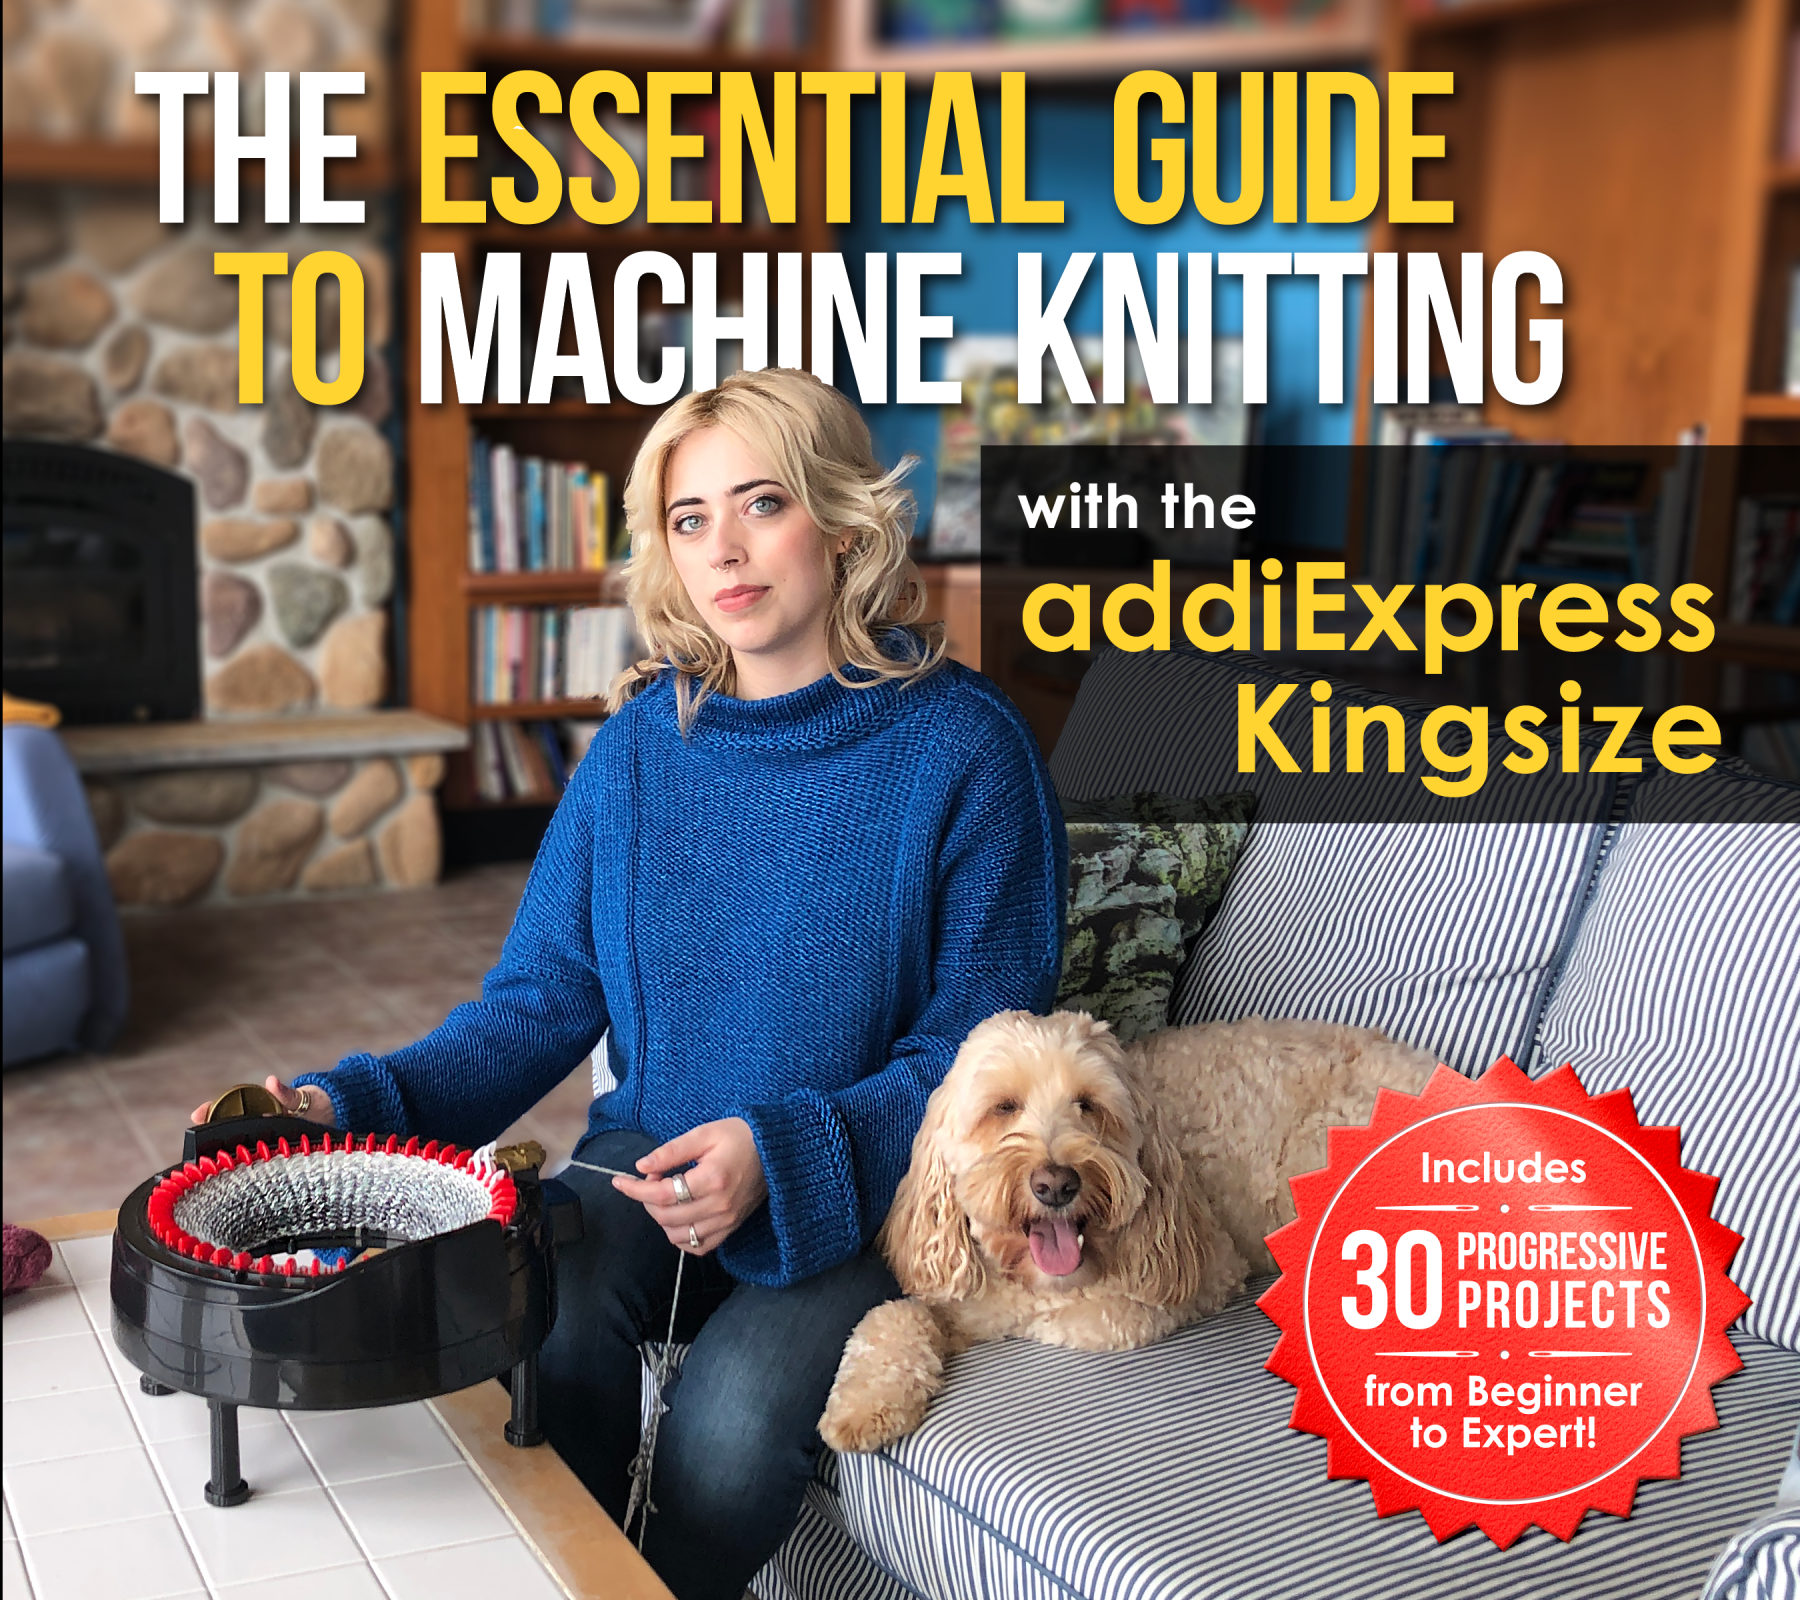 The Essential Guide to Machine Knitting - .pdf download